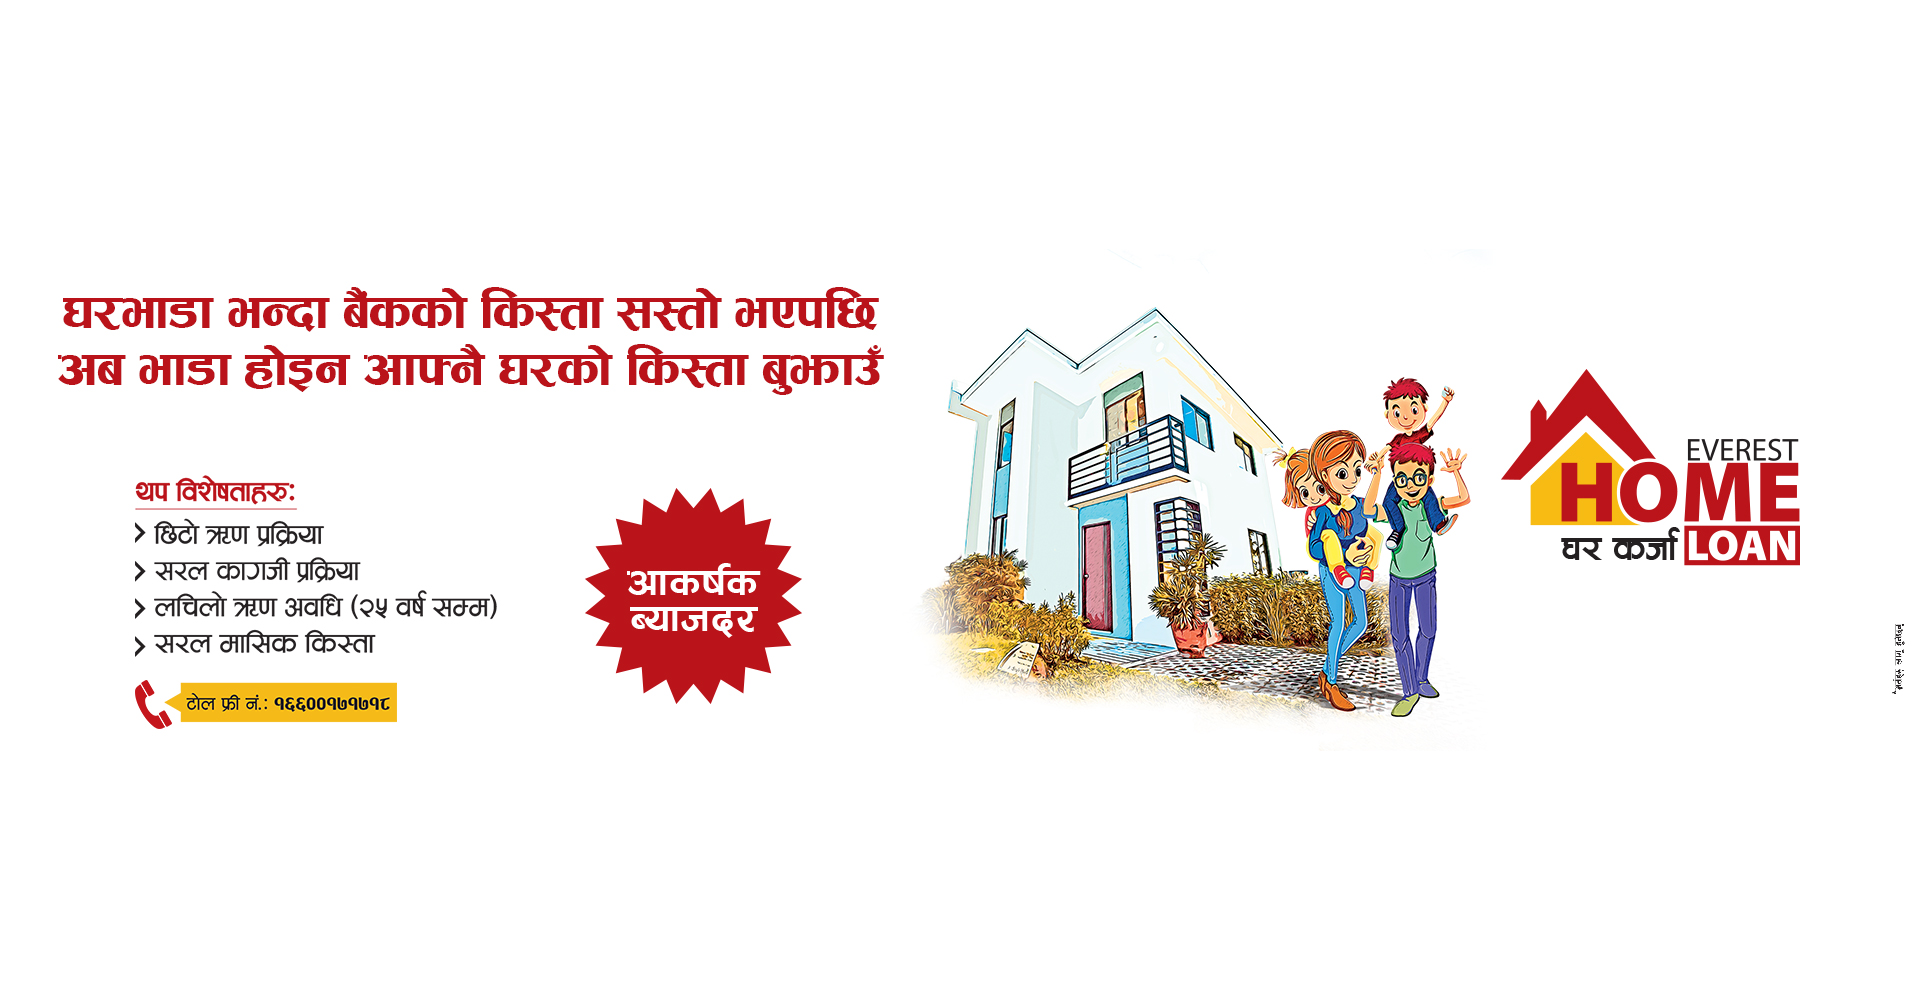 Everest Home Loan